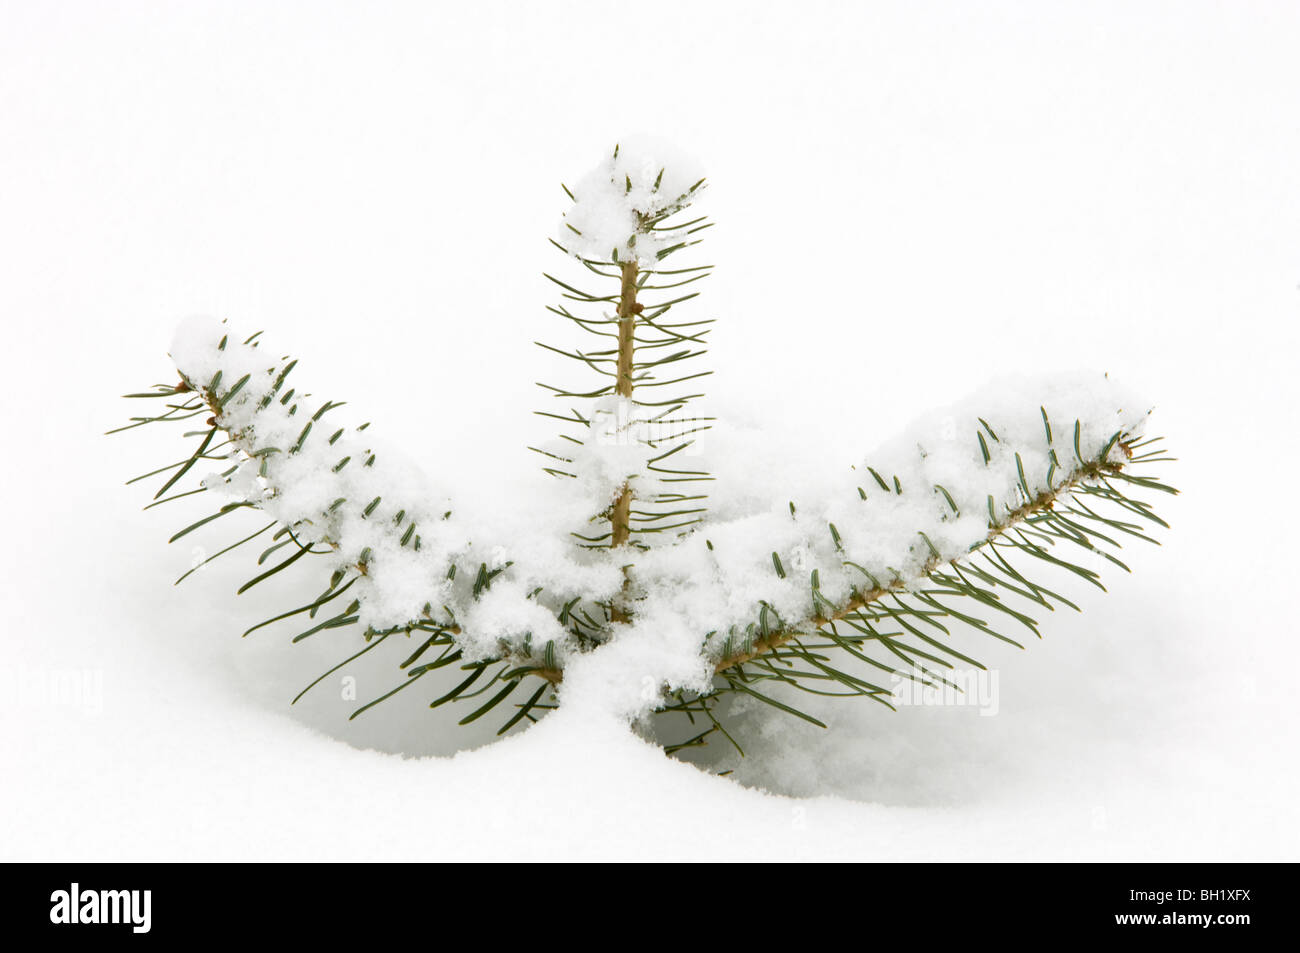 White spruce (Picea glauca) seedling branches with fresh snow, Greater Sudbury, Ontario, Canada - Stock Image